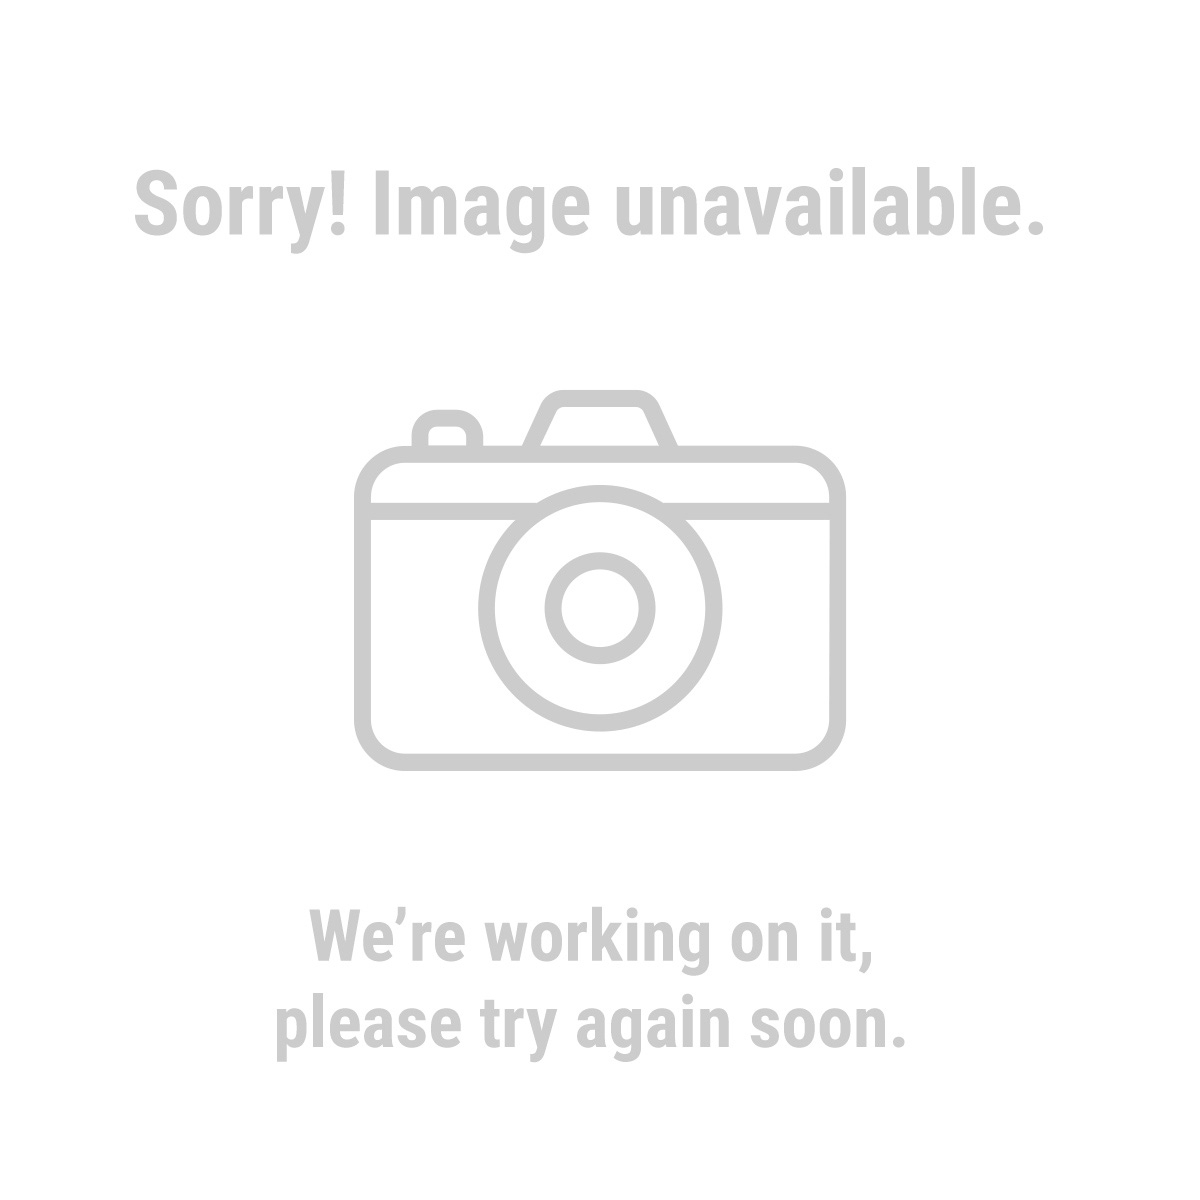 Drill Master 93080 Pack of 10 High Speed Steel Titanium Nitride Drill Bits